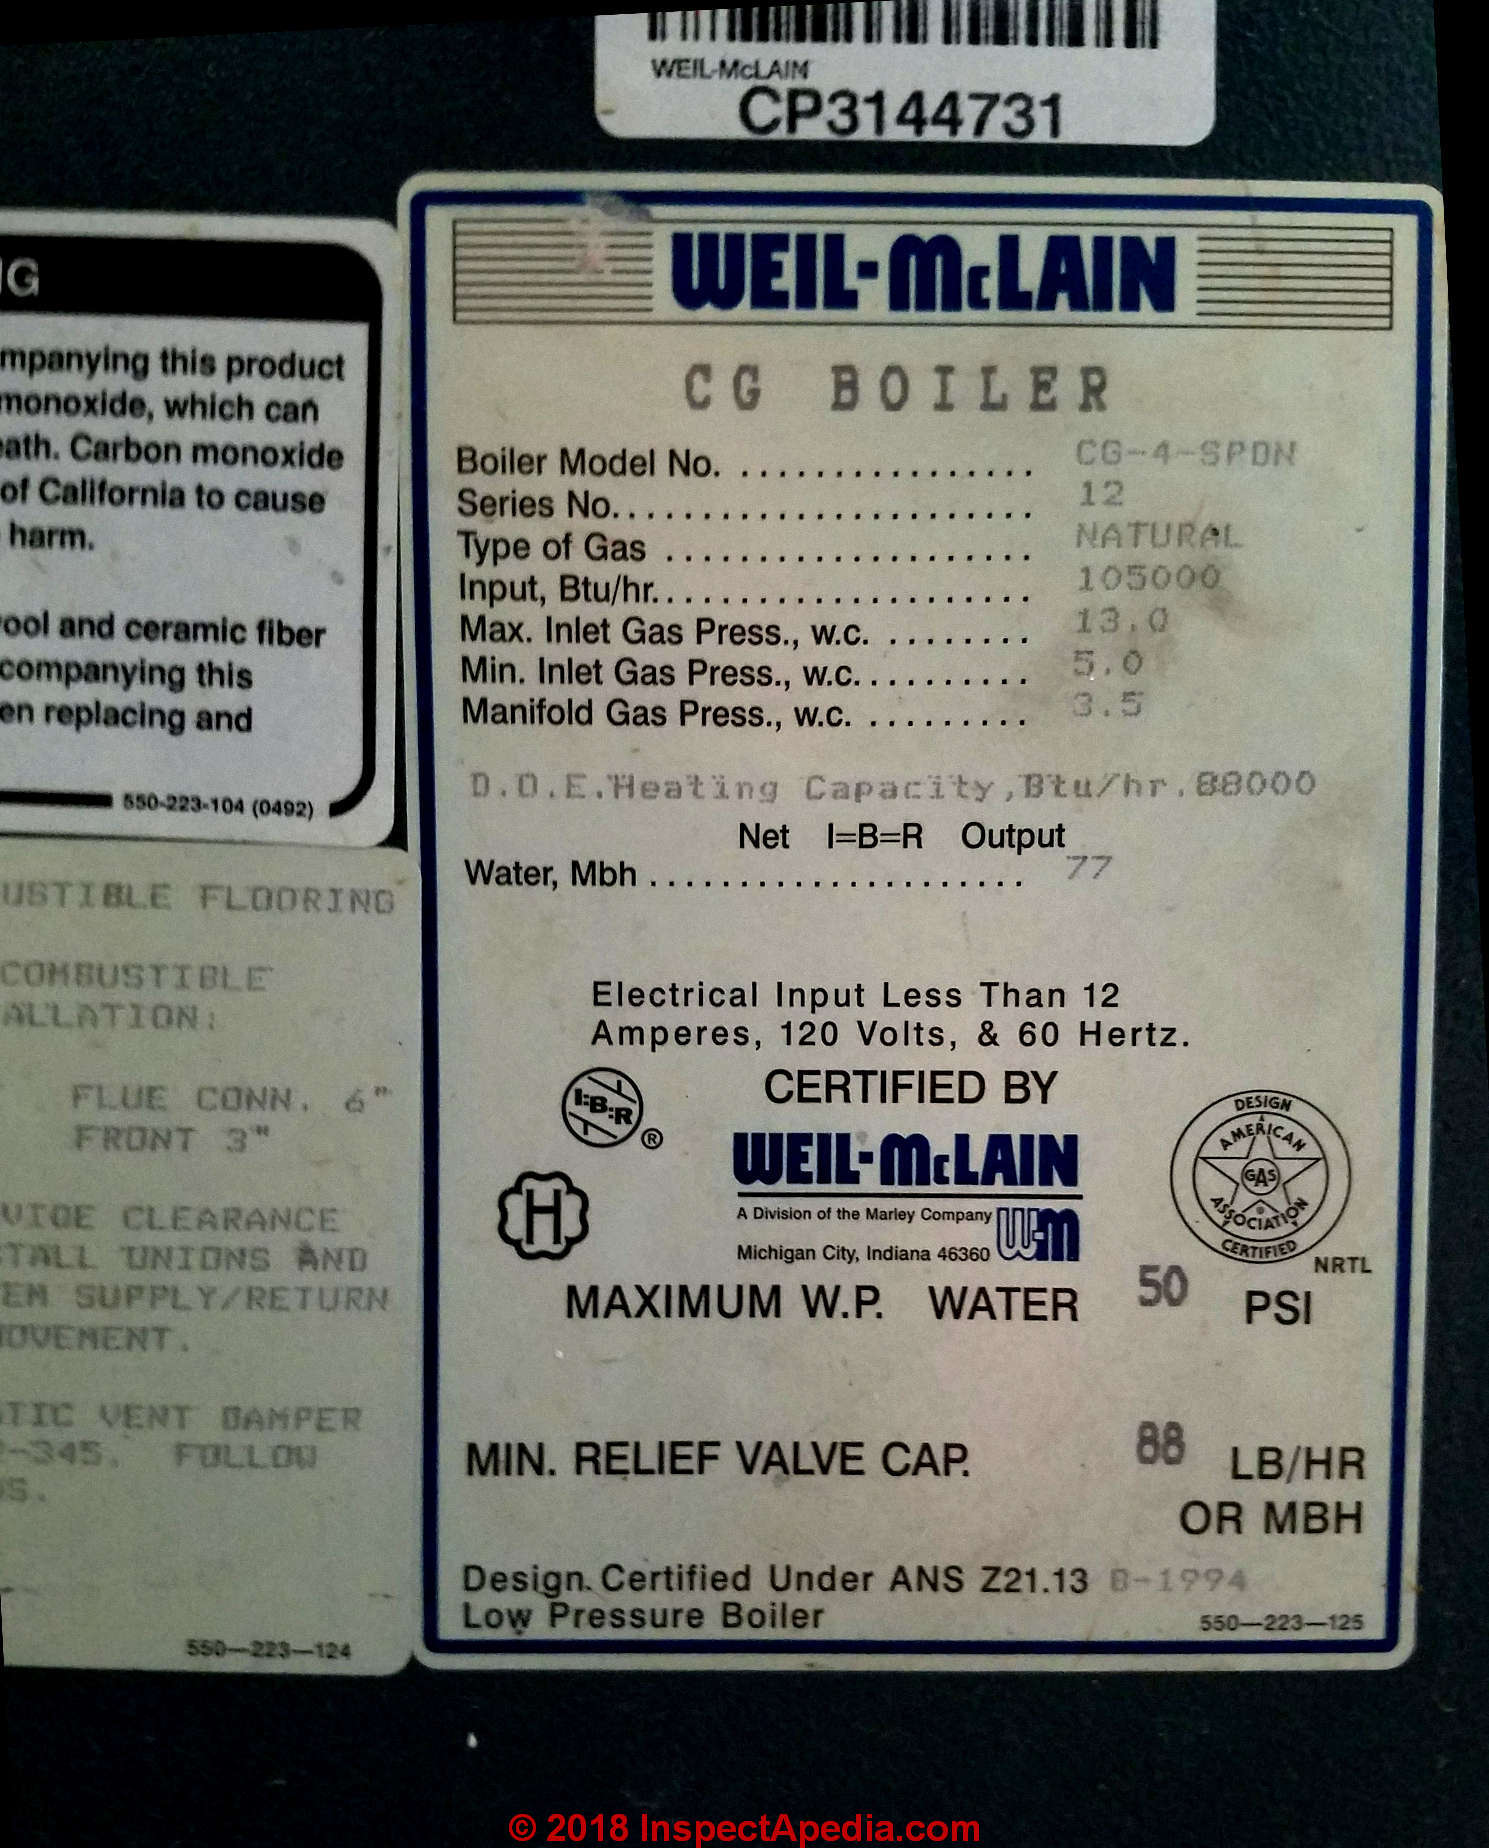 Installation And Service Manuals For Heating Heat Pump Air Luxaire Wiring Diagram Data Tag From A Weil Mclain Gas Boiler In Two Harbors Mn C Daniel